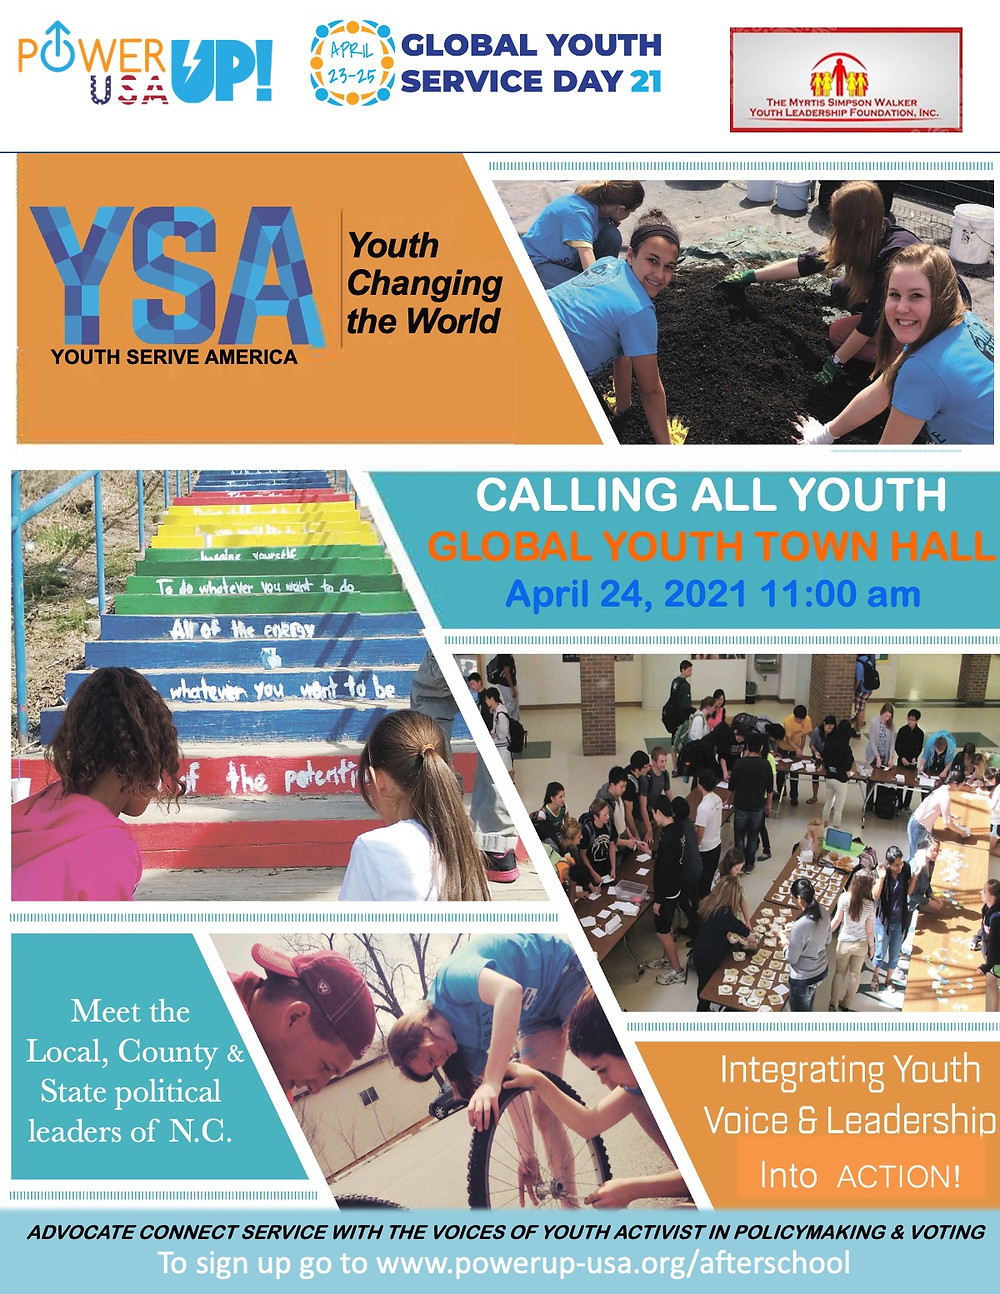 Global Youth Service Day 2021